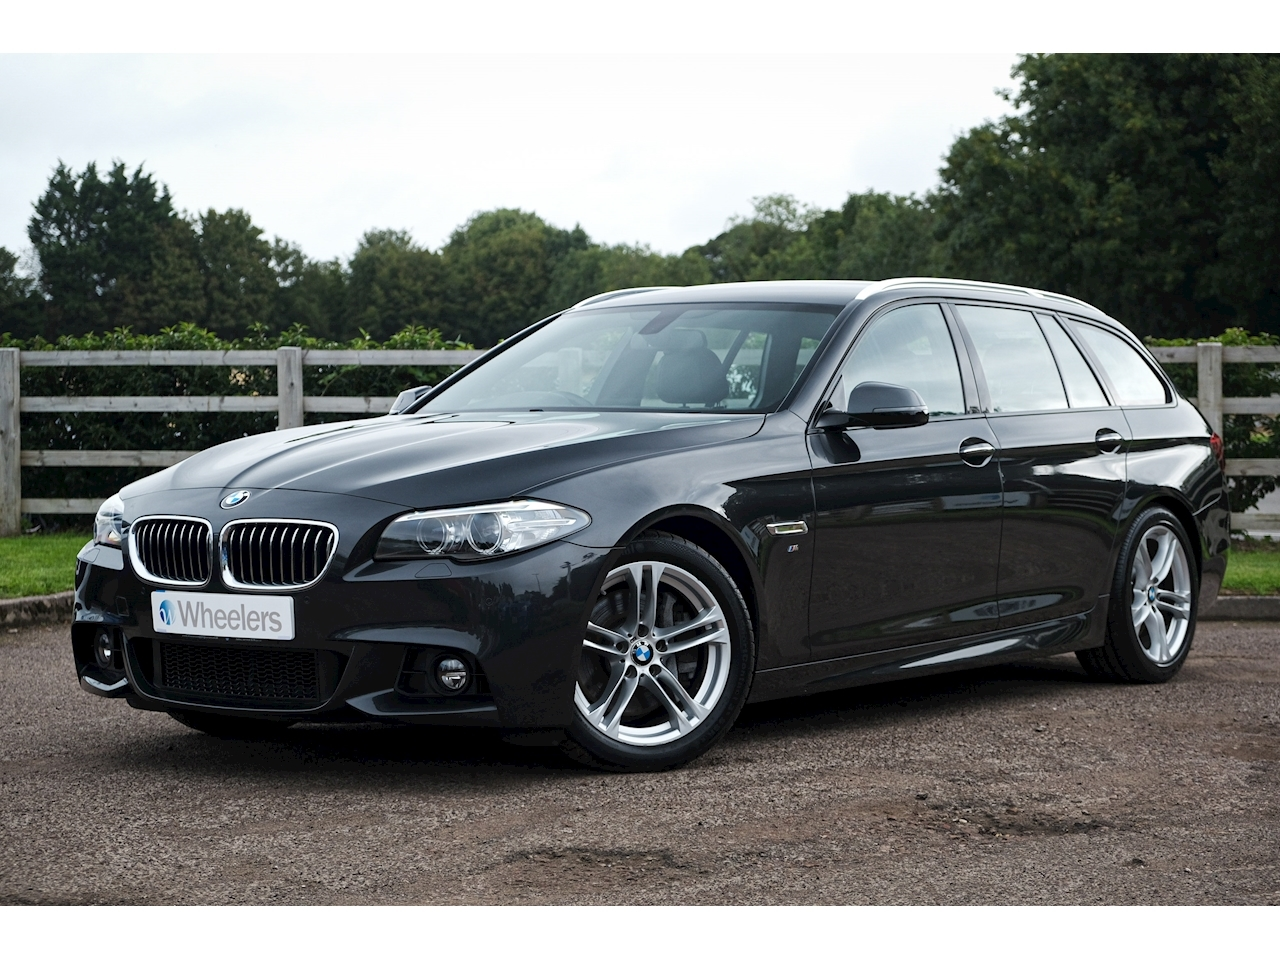 BMW 5 Series 535D M Sport Touring Estate 3.0 Automatic Diesel